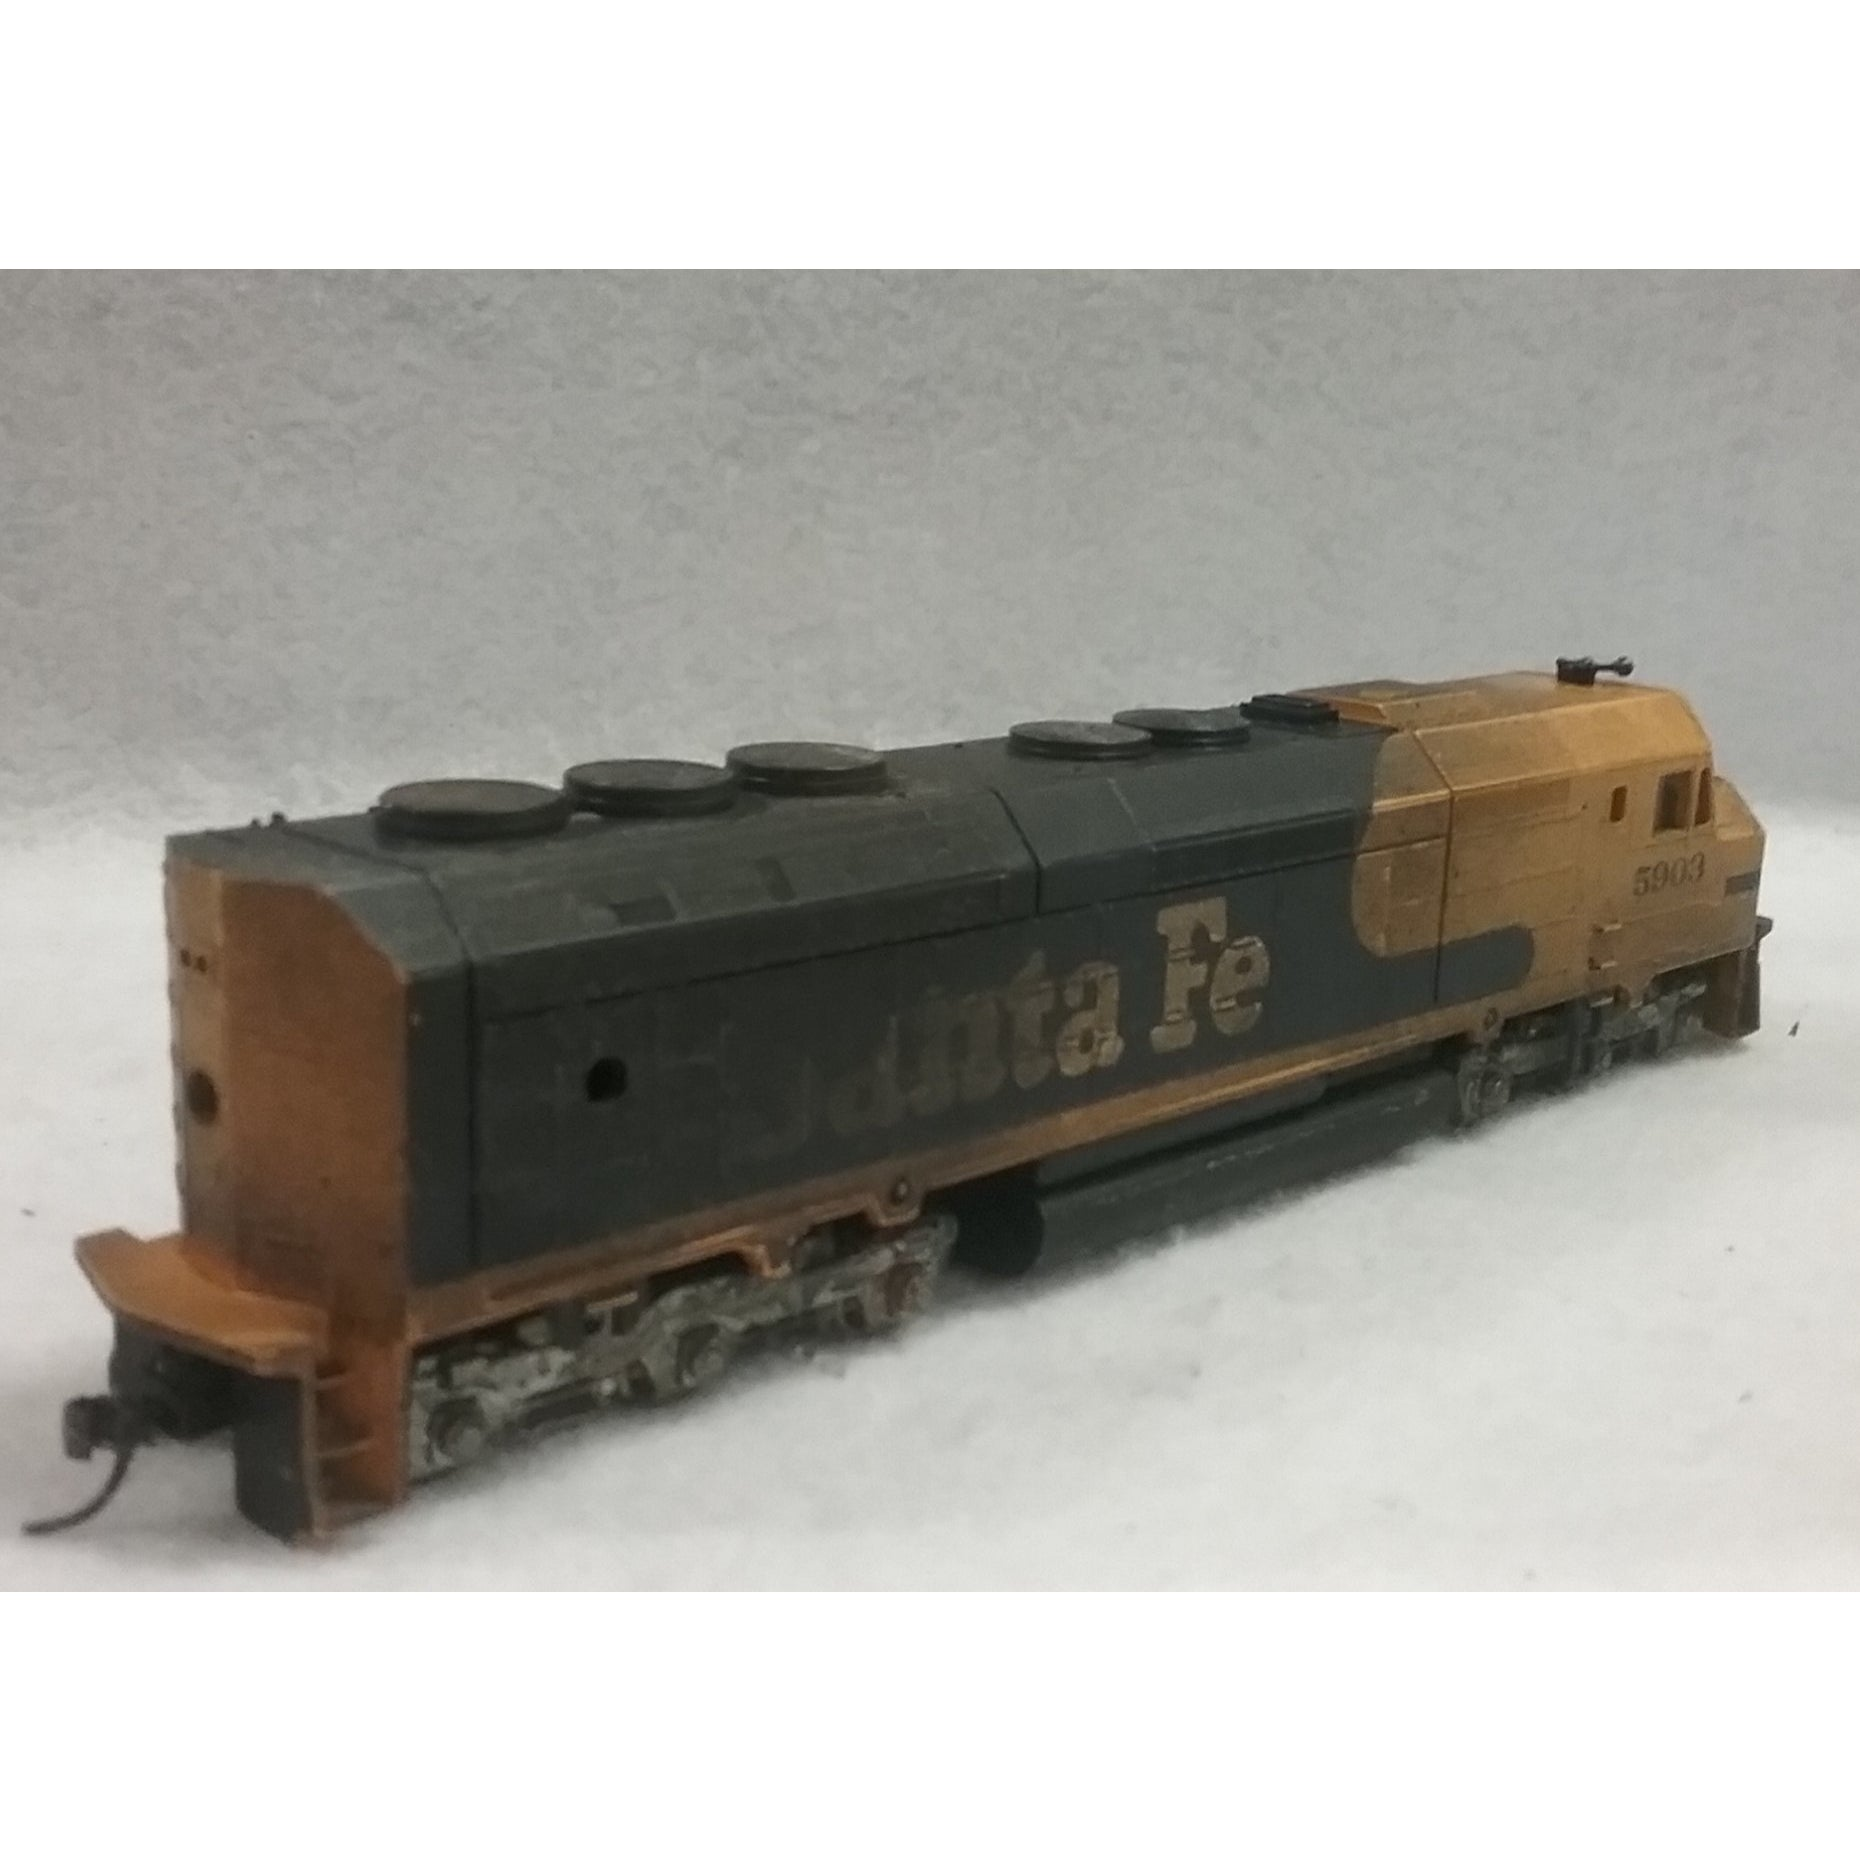 Ho Scale Athearn Santa Fe Diesel Locomotive No 5903 Swasey S Hardware Hobbies